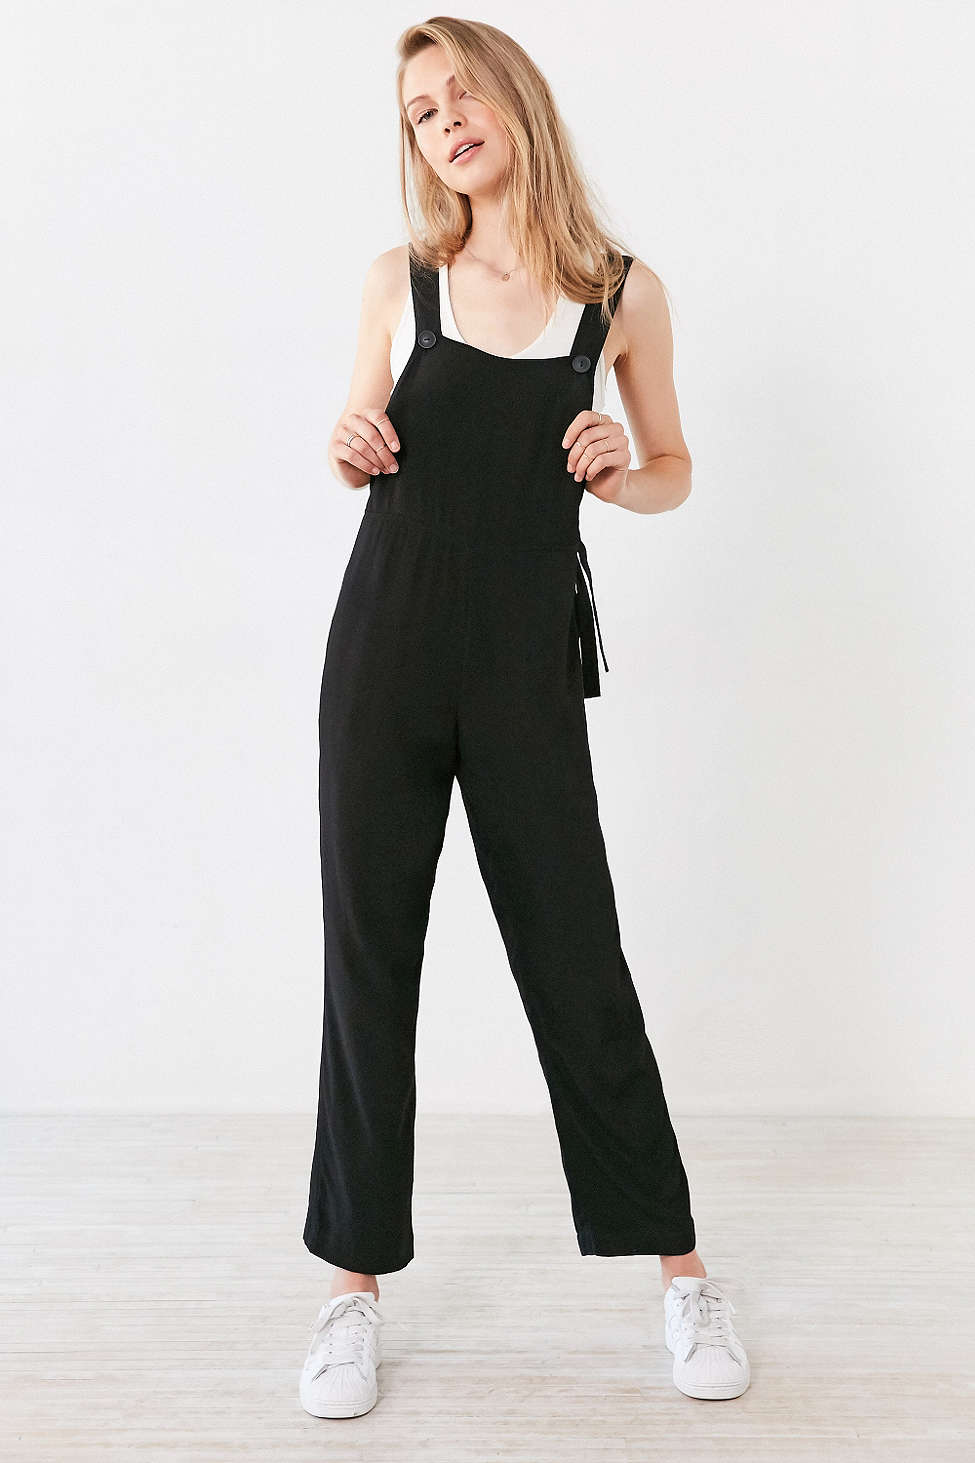 black-jumpsuit-white-top-tank-white-shoe-sneakers-blonde-spring-summer-wear-fashion-style-overalls-weekend.jpg